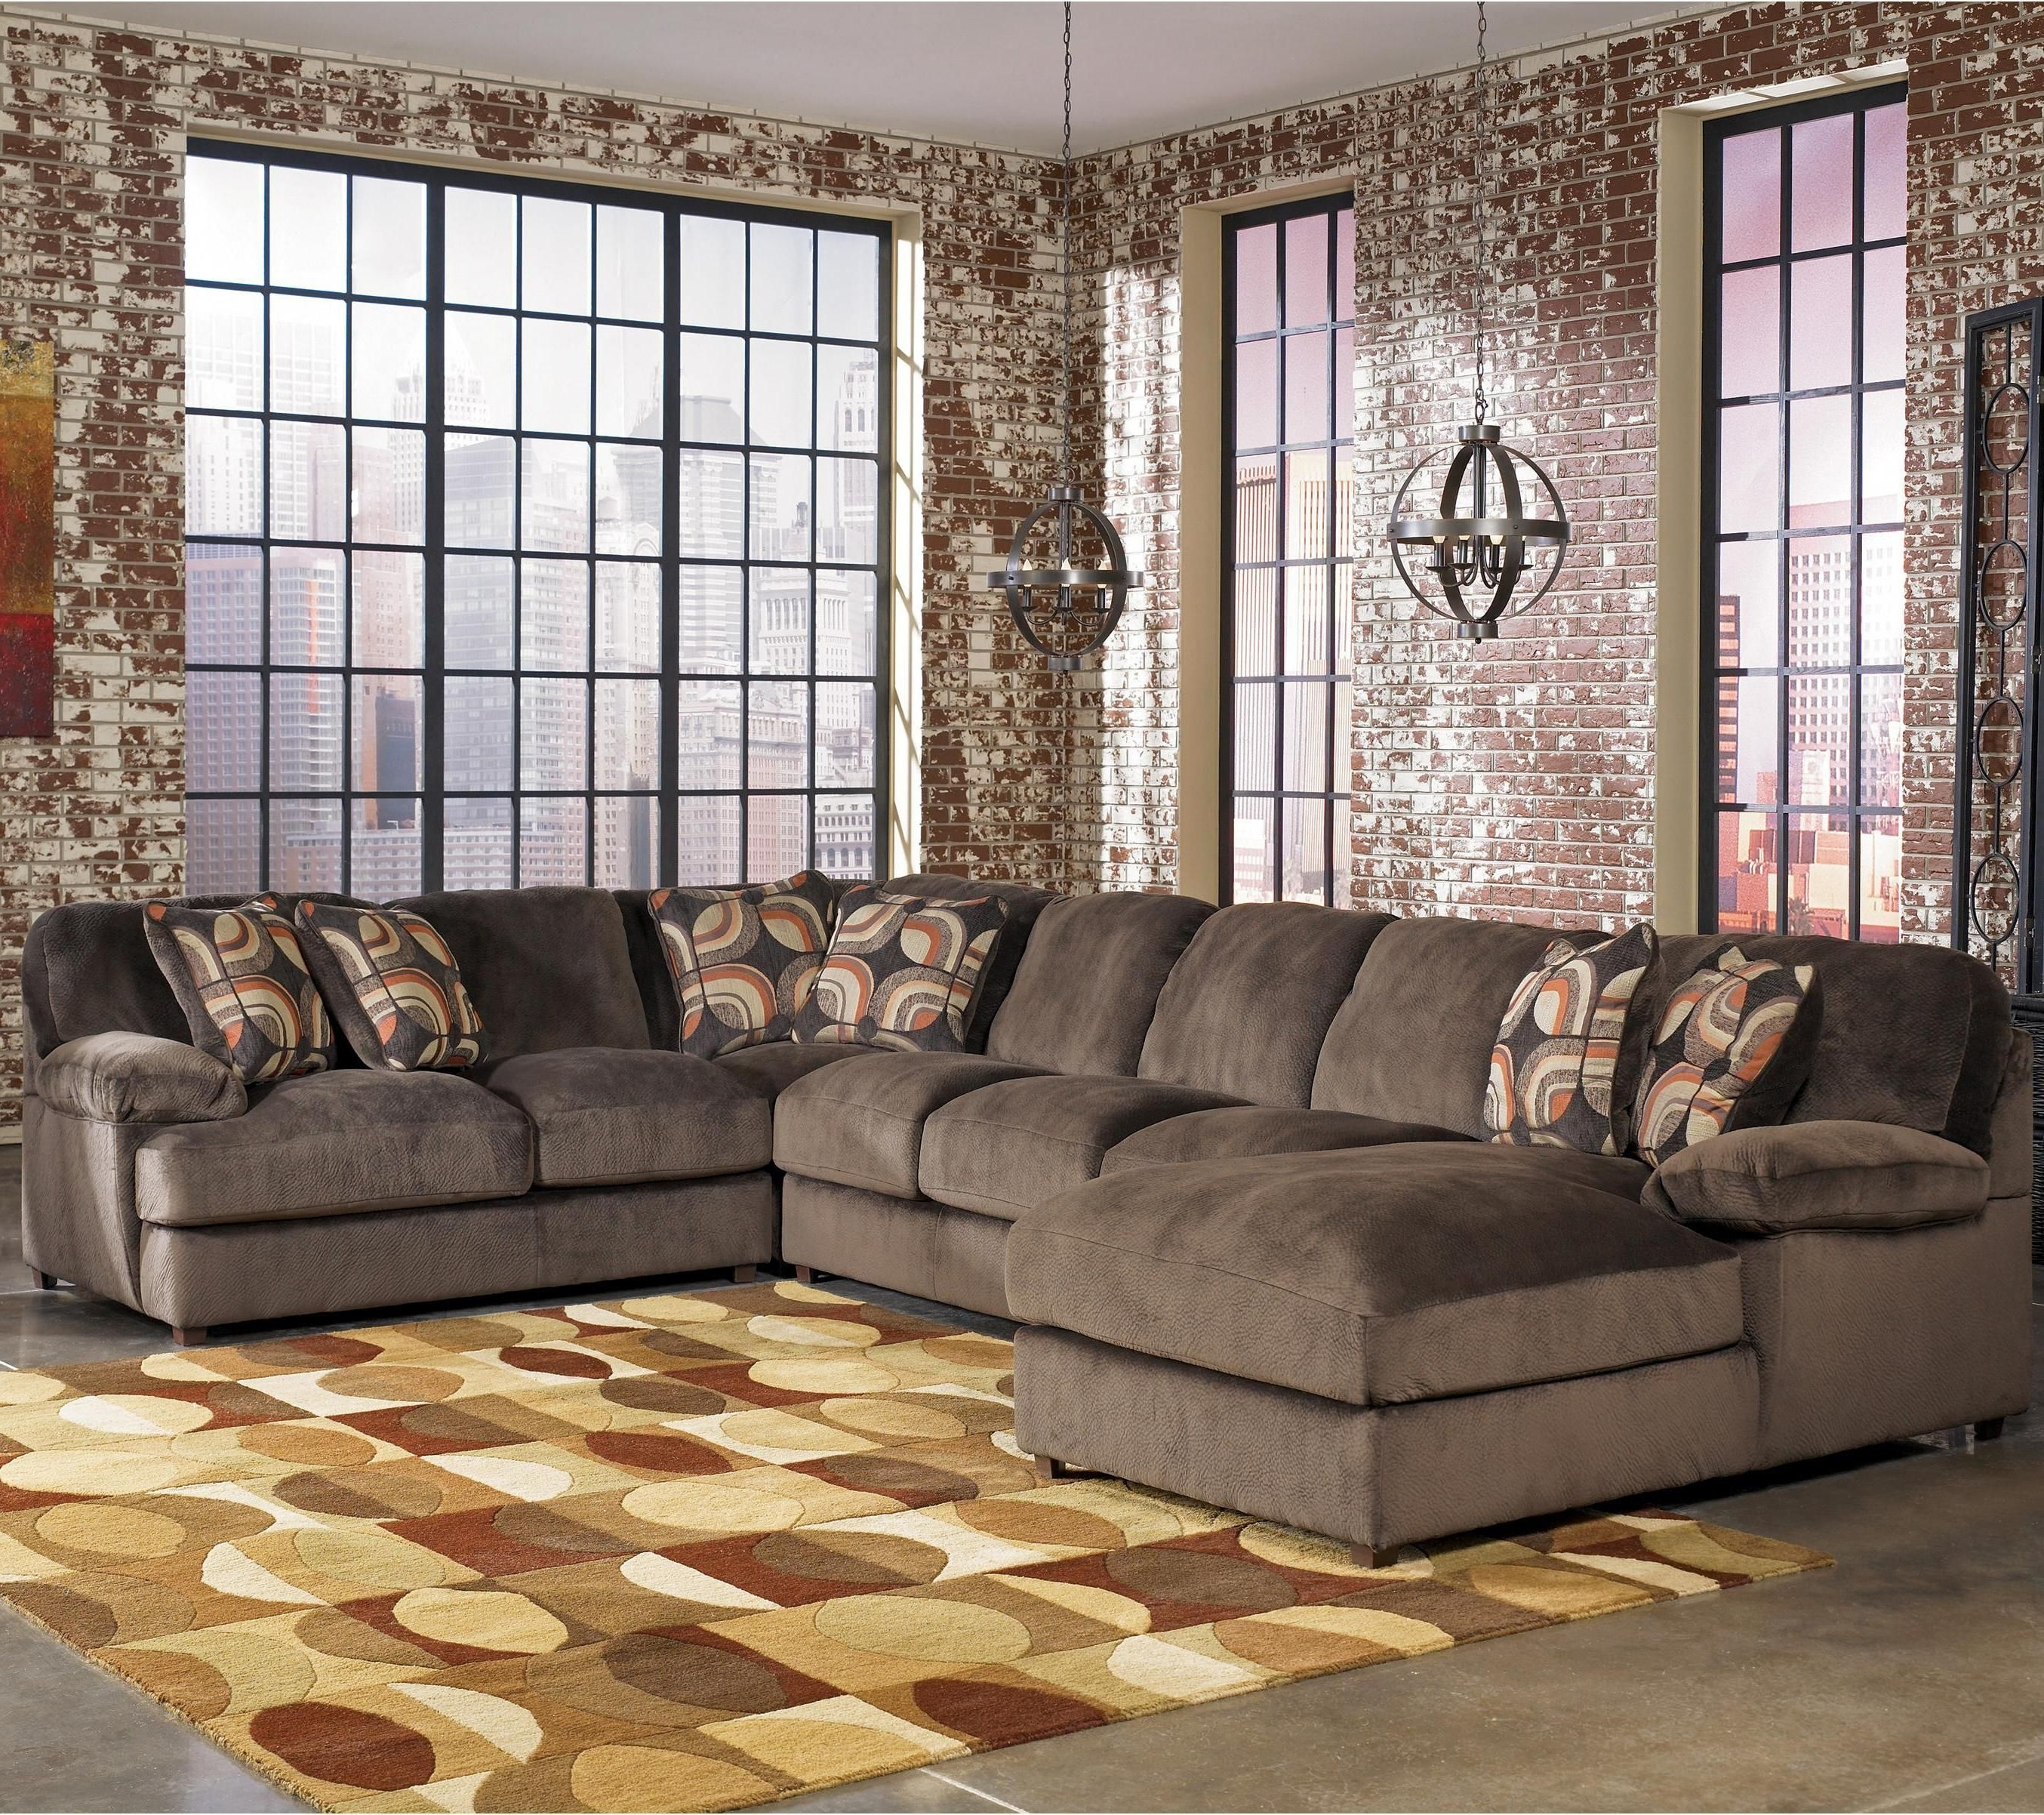 Flood Moultrie Throughout Killeen Tx Sectional Sofas (View 5 of 15)